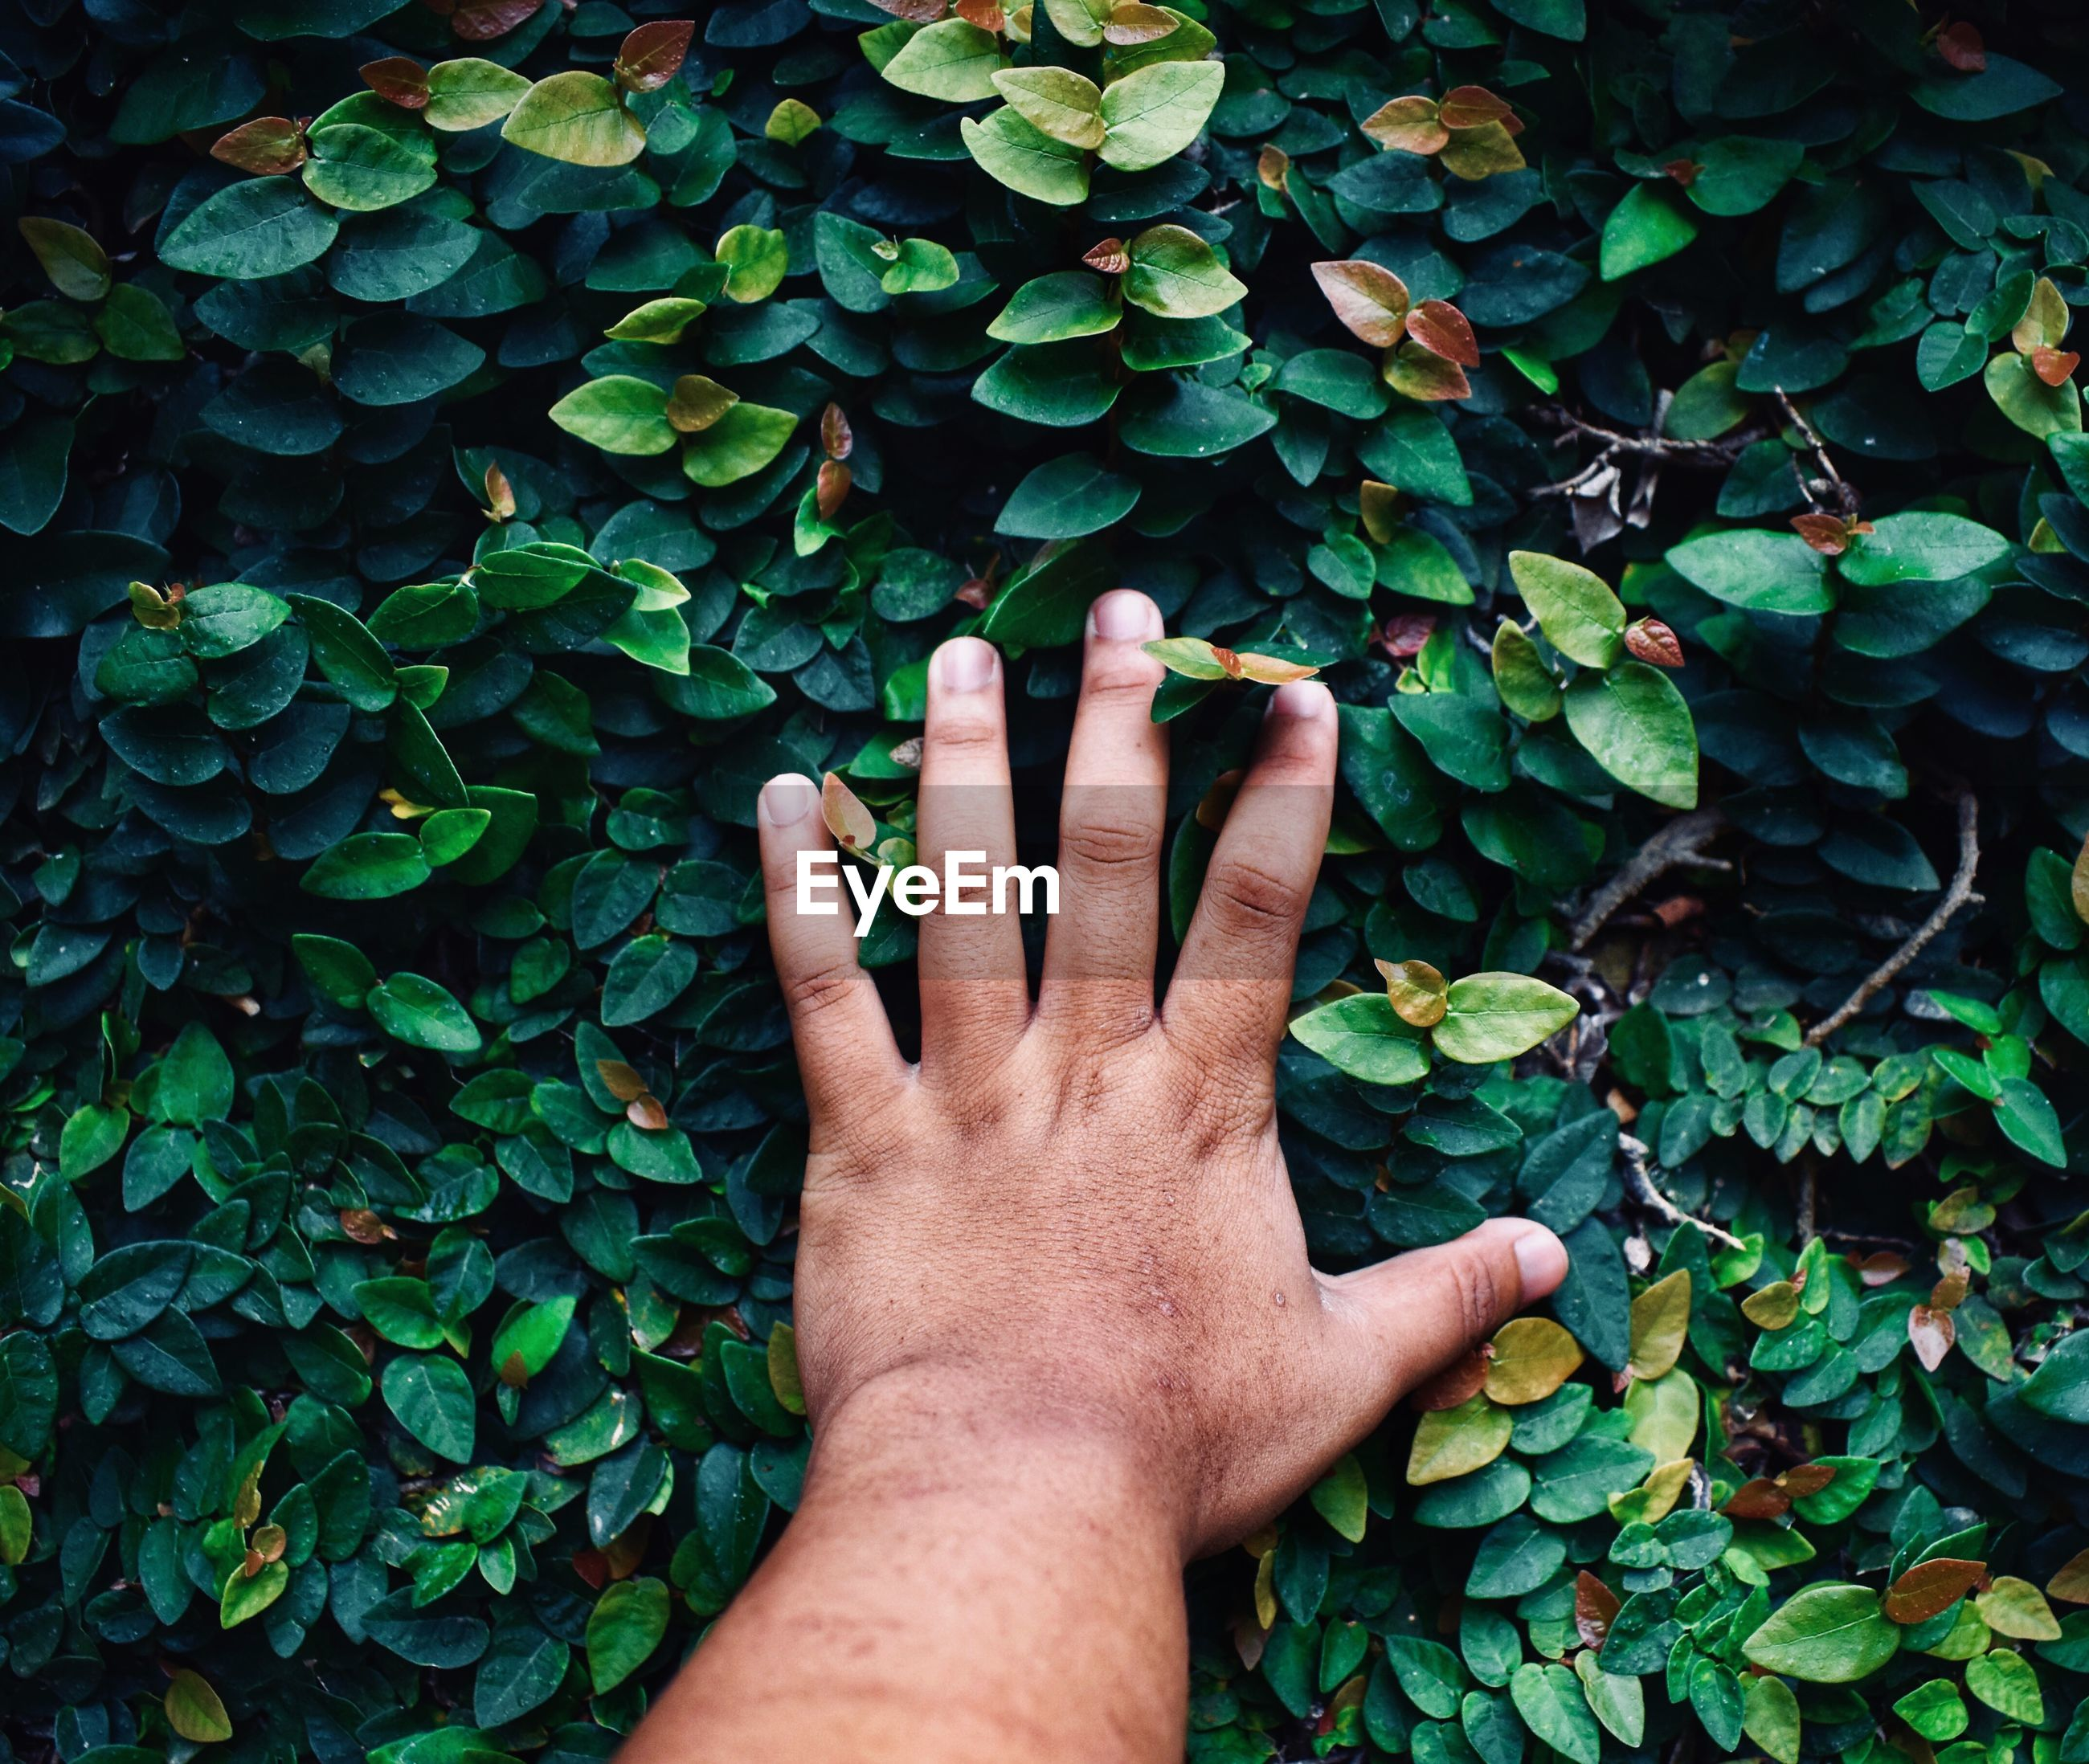 Cropped hand of man touching plants